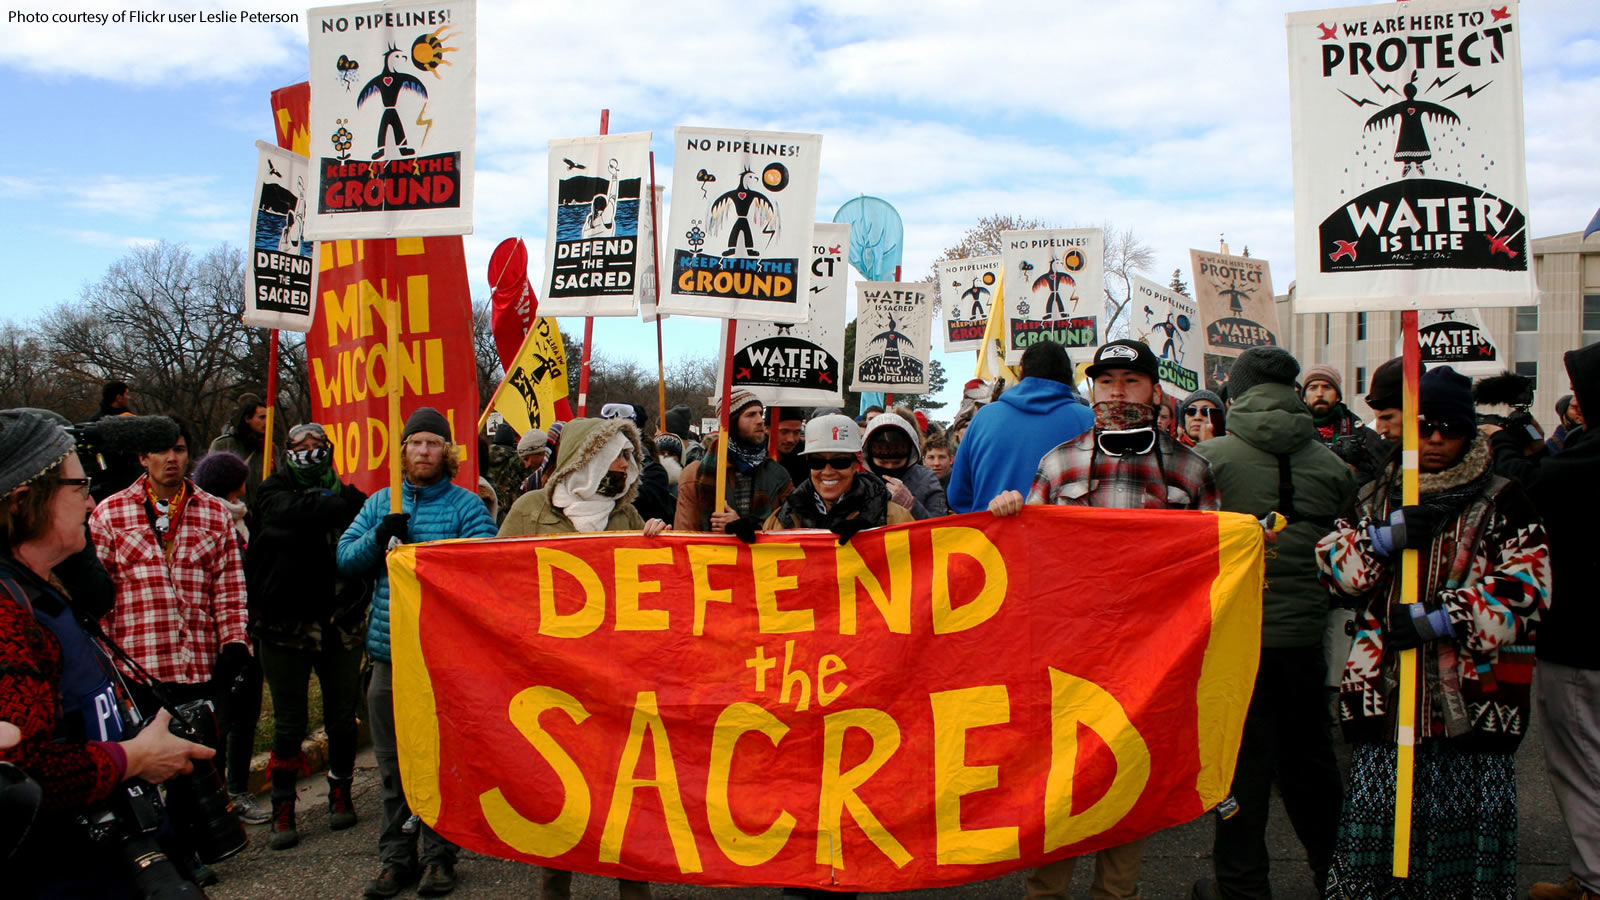 Standing Rock Protestors with Defend Sacred Water Banners